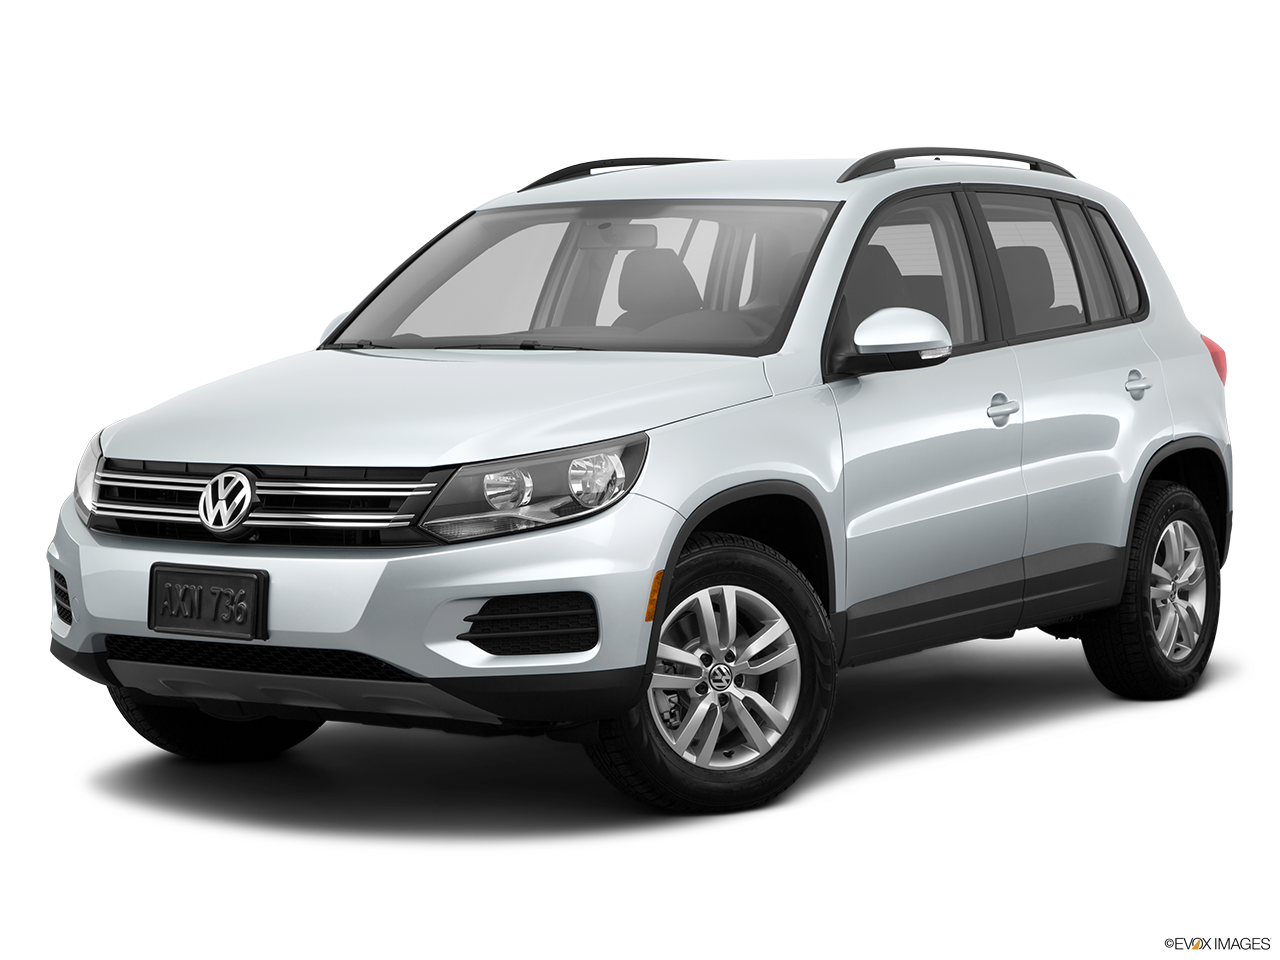 2015 volkswagen tiguan dealer serving nashville hallmark volkswagen. Black Bedroom Furniture Sets. Home Design Ideas